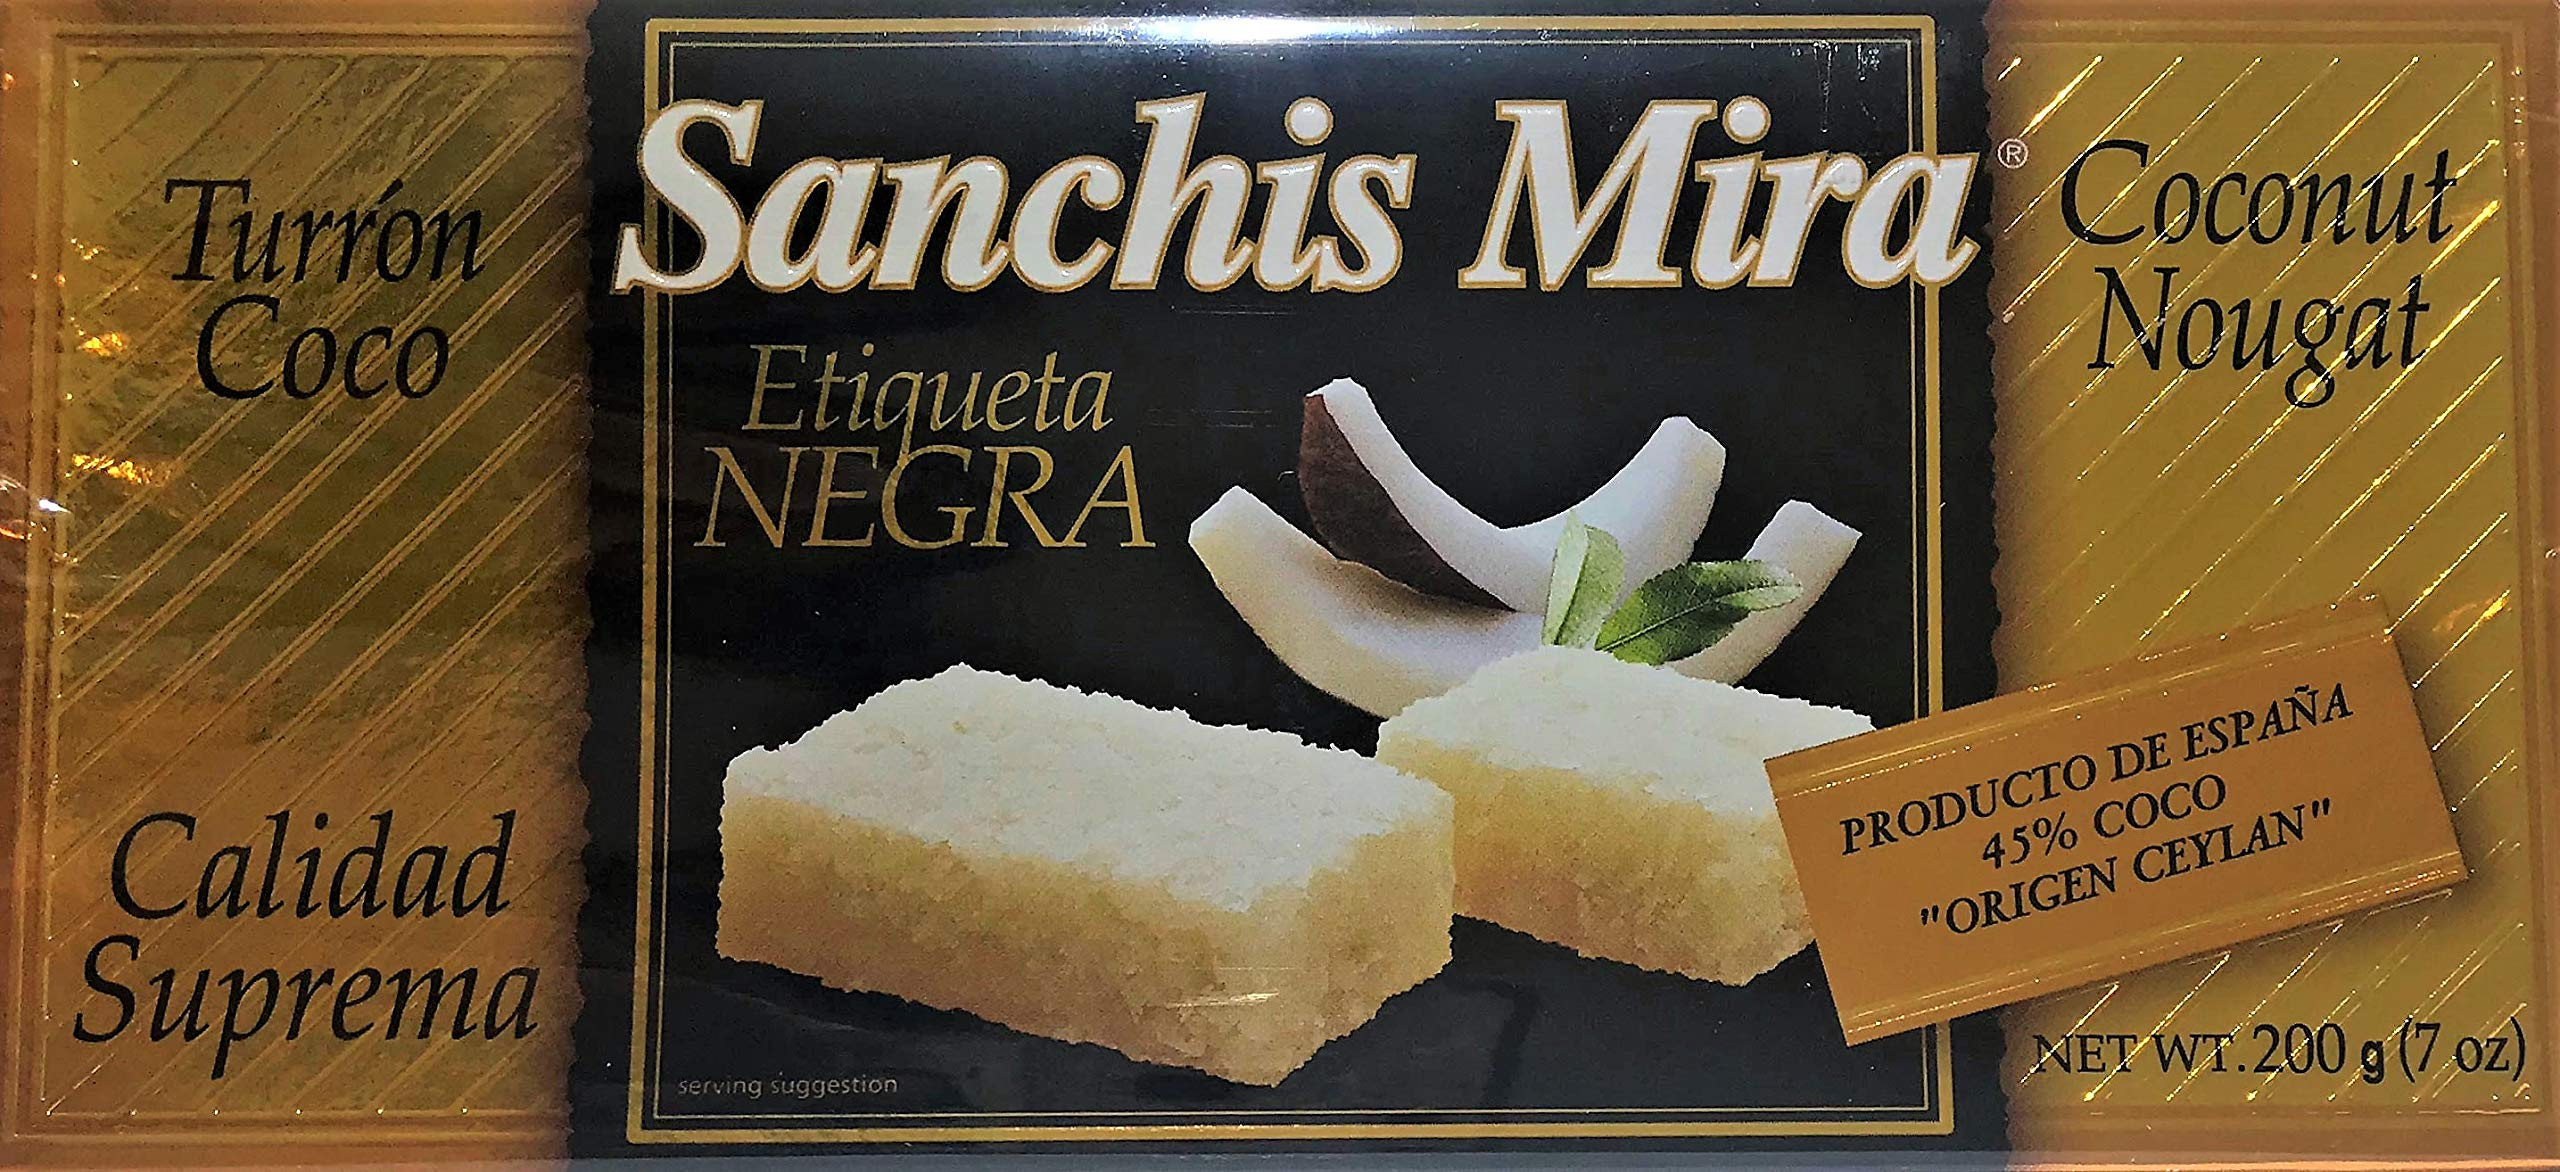 Sanchis Mira Turron de Coco Just arrived from Spain. 7 oz.